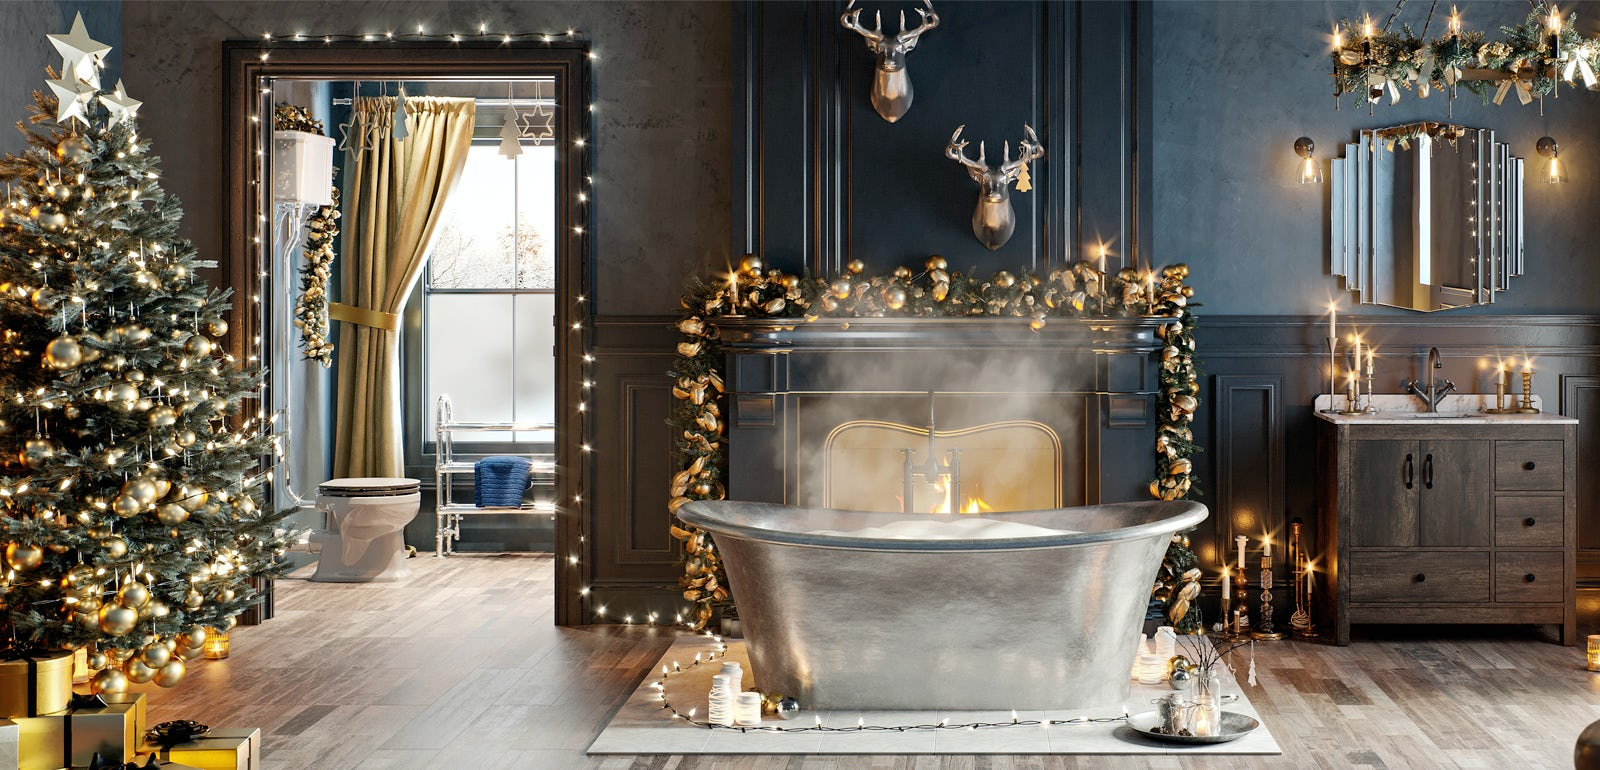 Bathroom Ideas: Enchanted Winter part 1